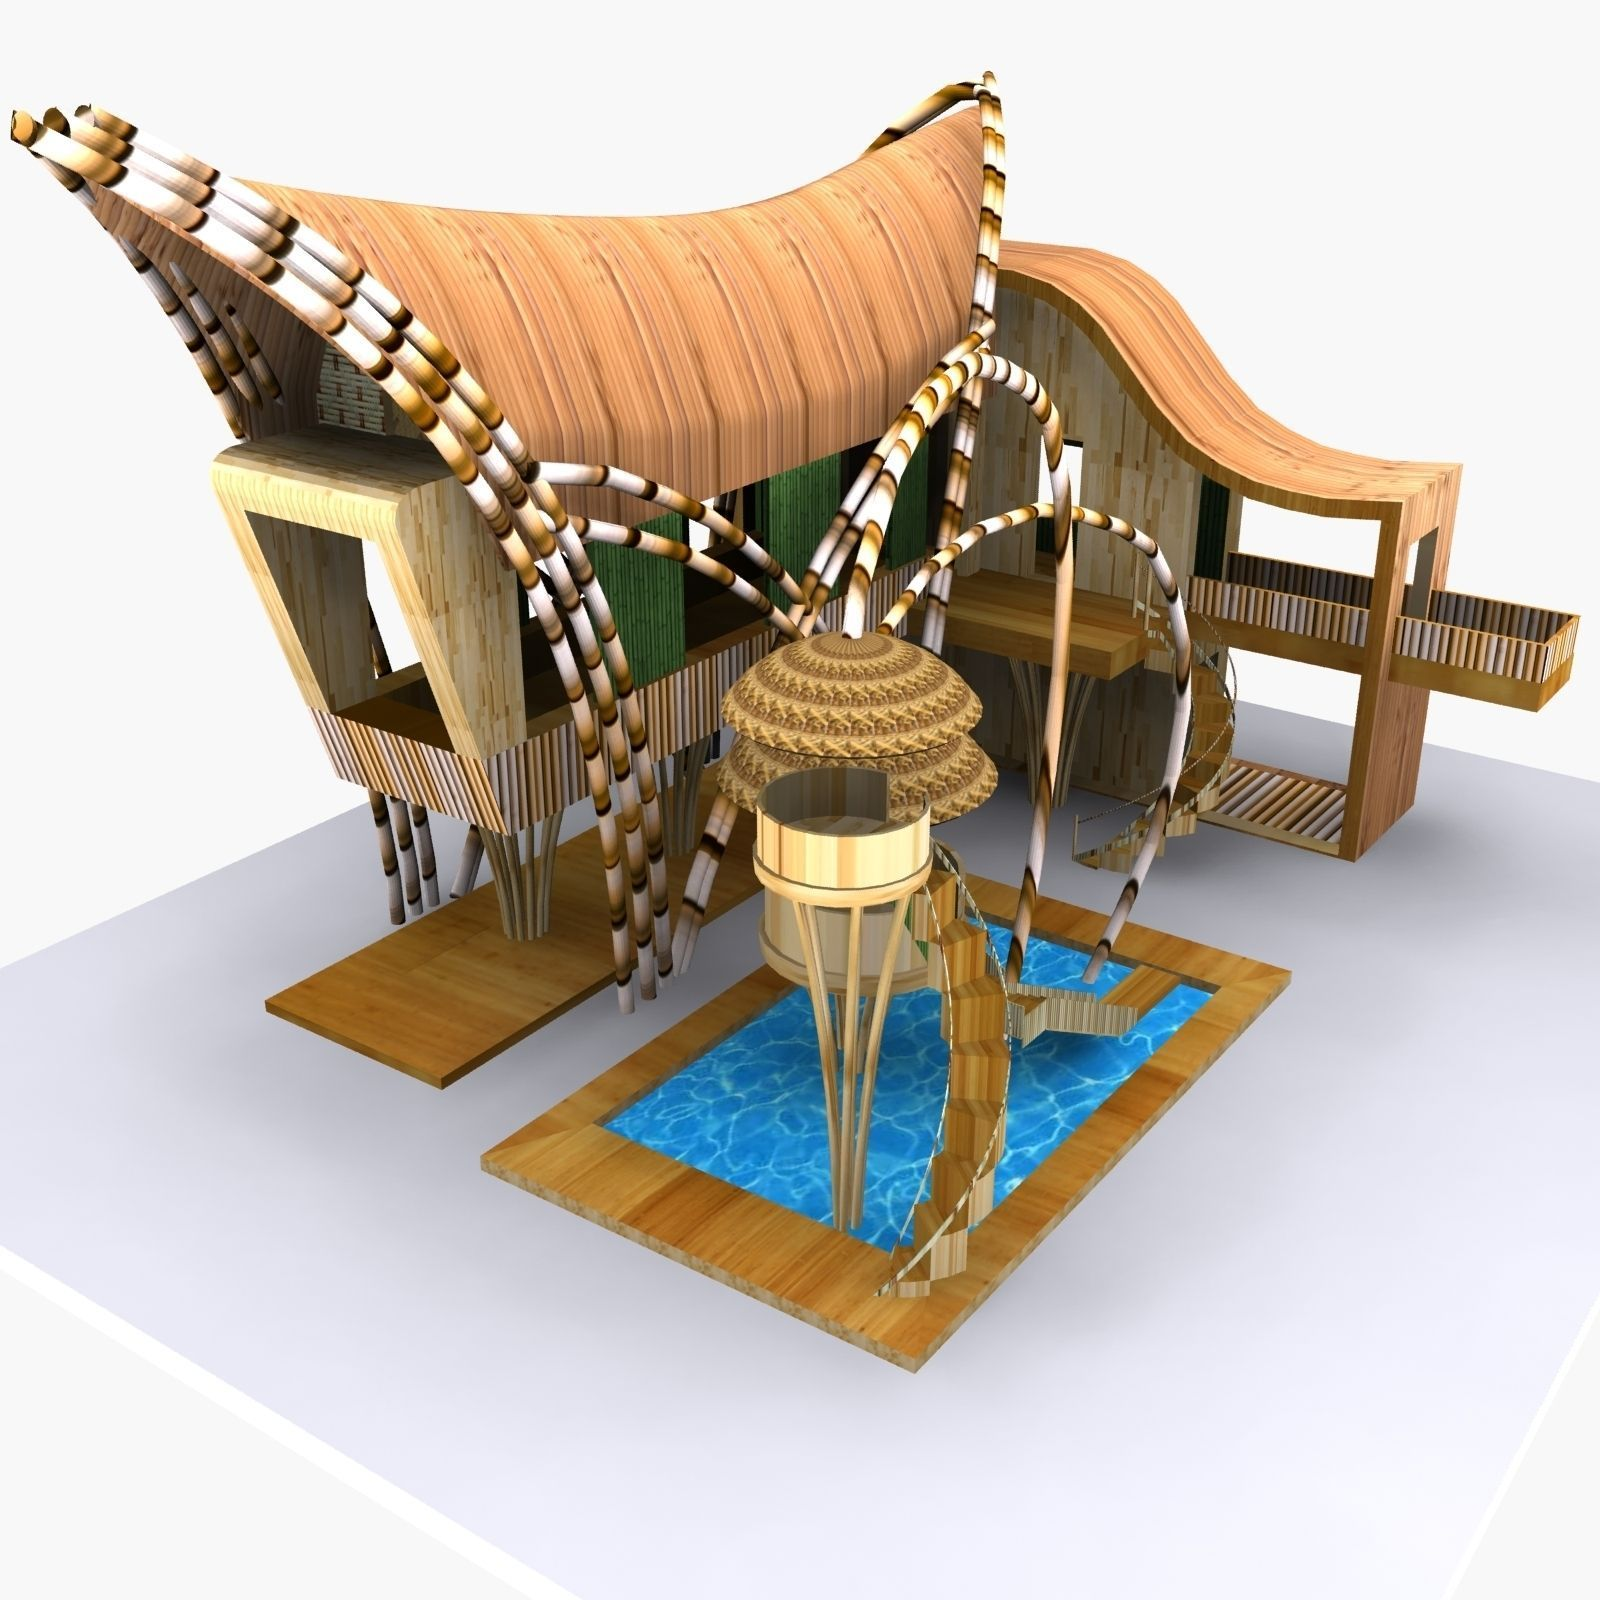 Bamboo House 3D Model MAX OBJ 3DS FBX | CGTrader.com